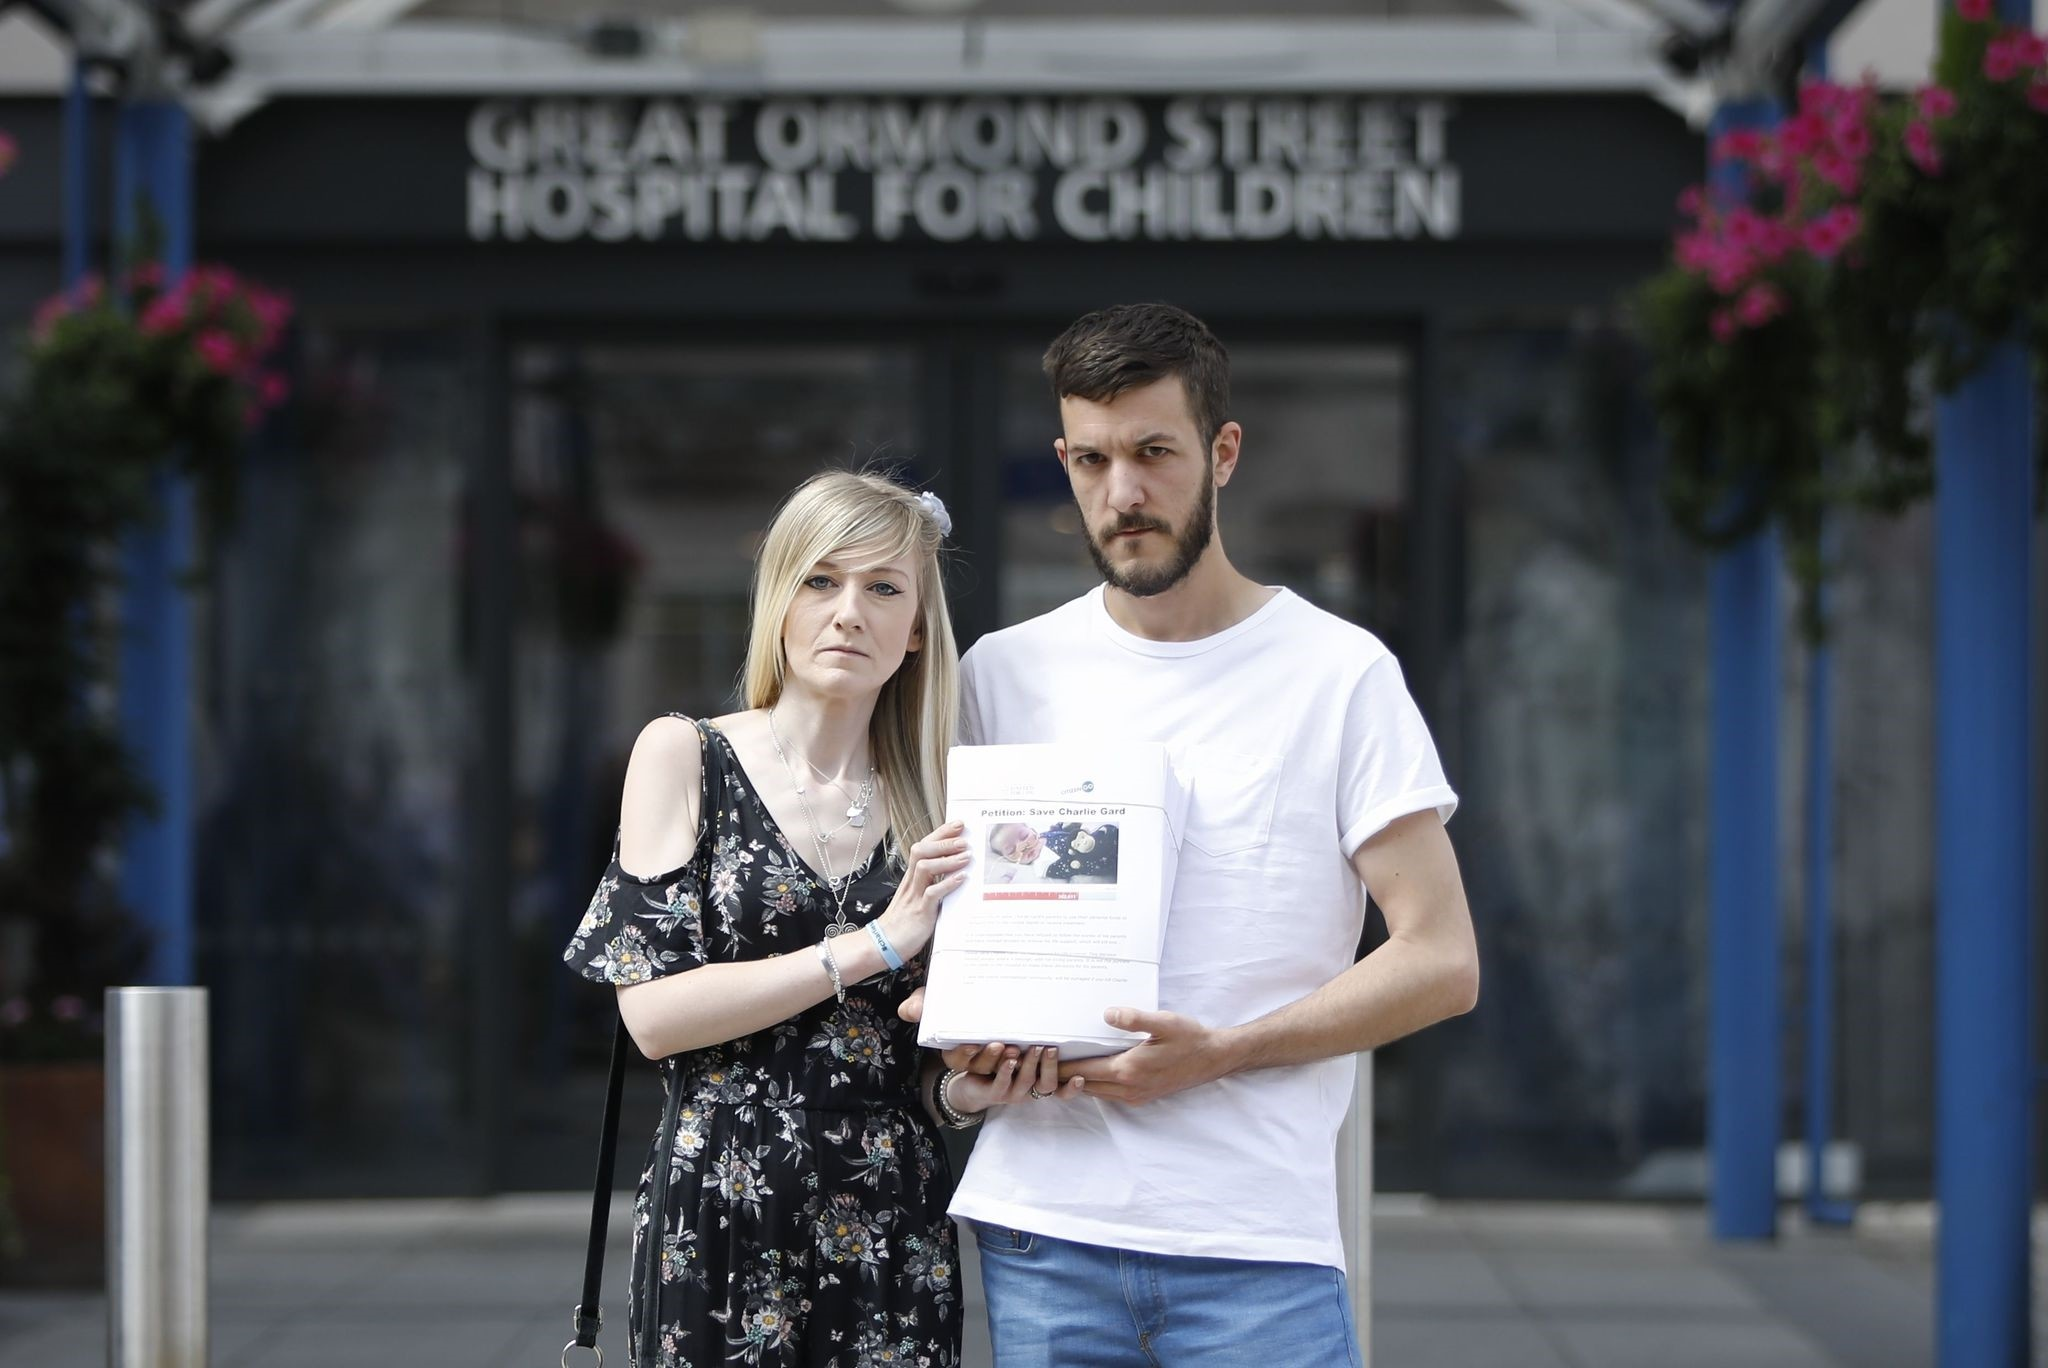 Connie Yates (L) and Chris Gard, parents of terminally-ill 10-month-old Charlie Gard, pose with a petition of signatures supporting their case, prior to delivering it to the Great Ormond Street Hospital for Children in London. (AFP Photo)